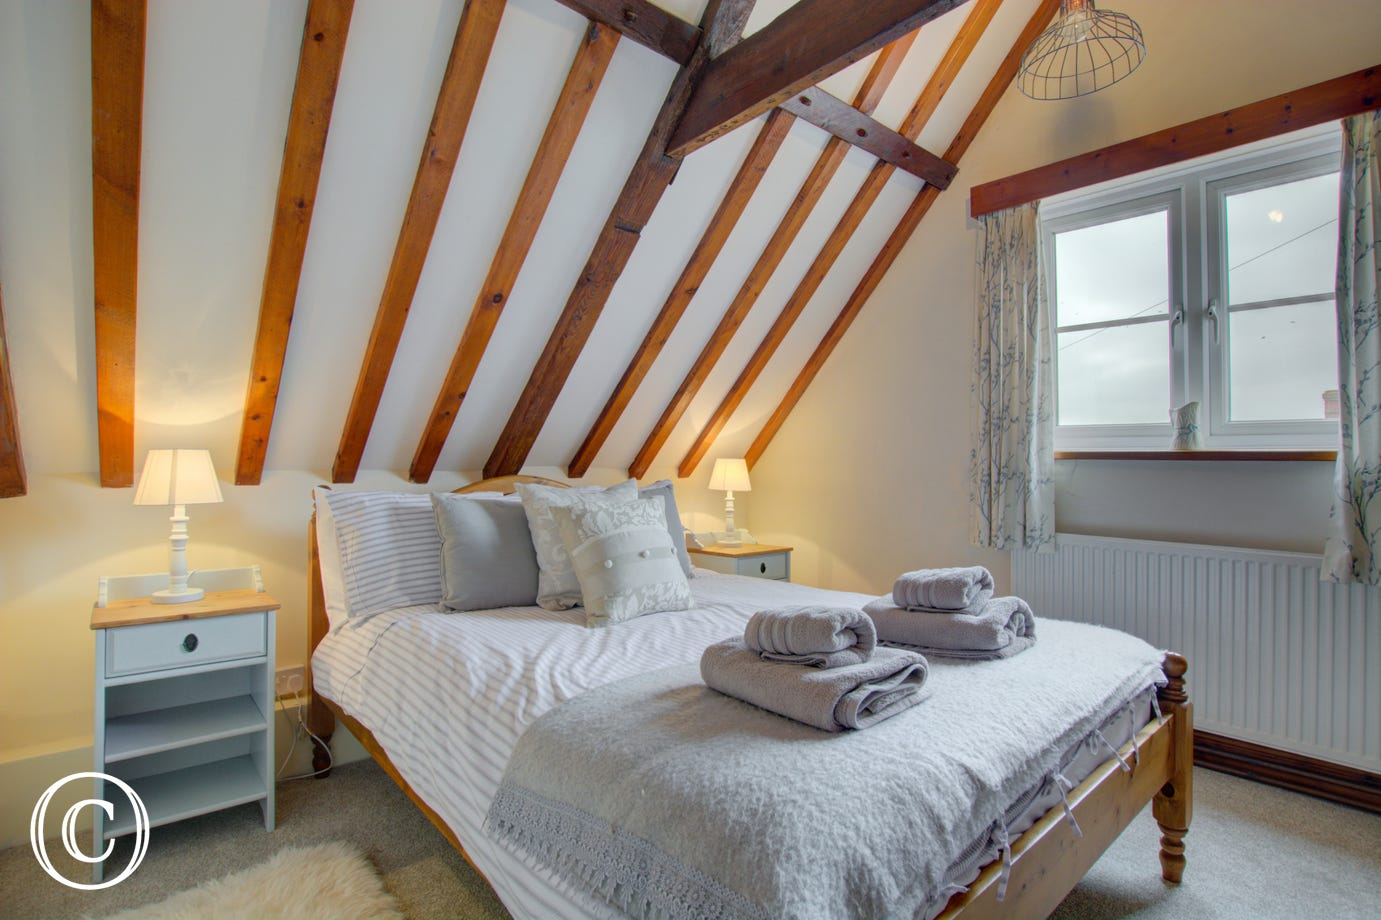 Main bedroom with lovely open beams and double bed